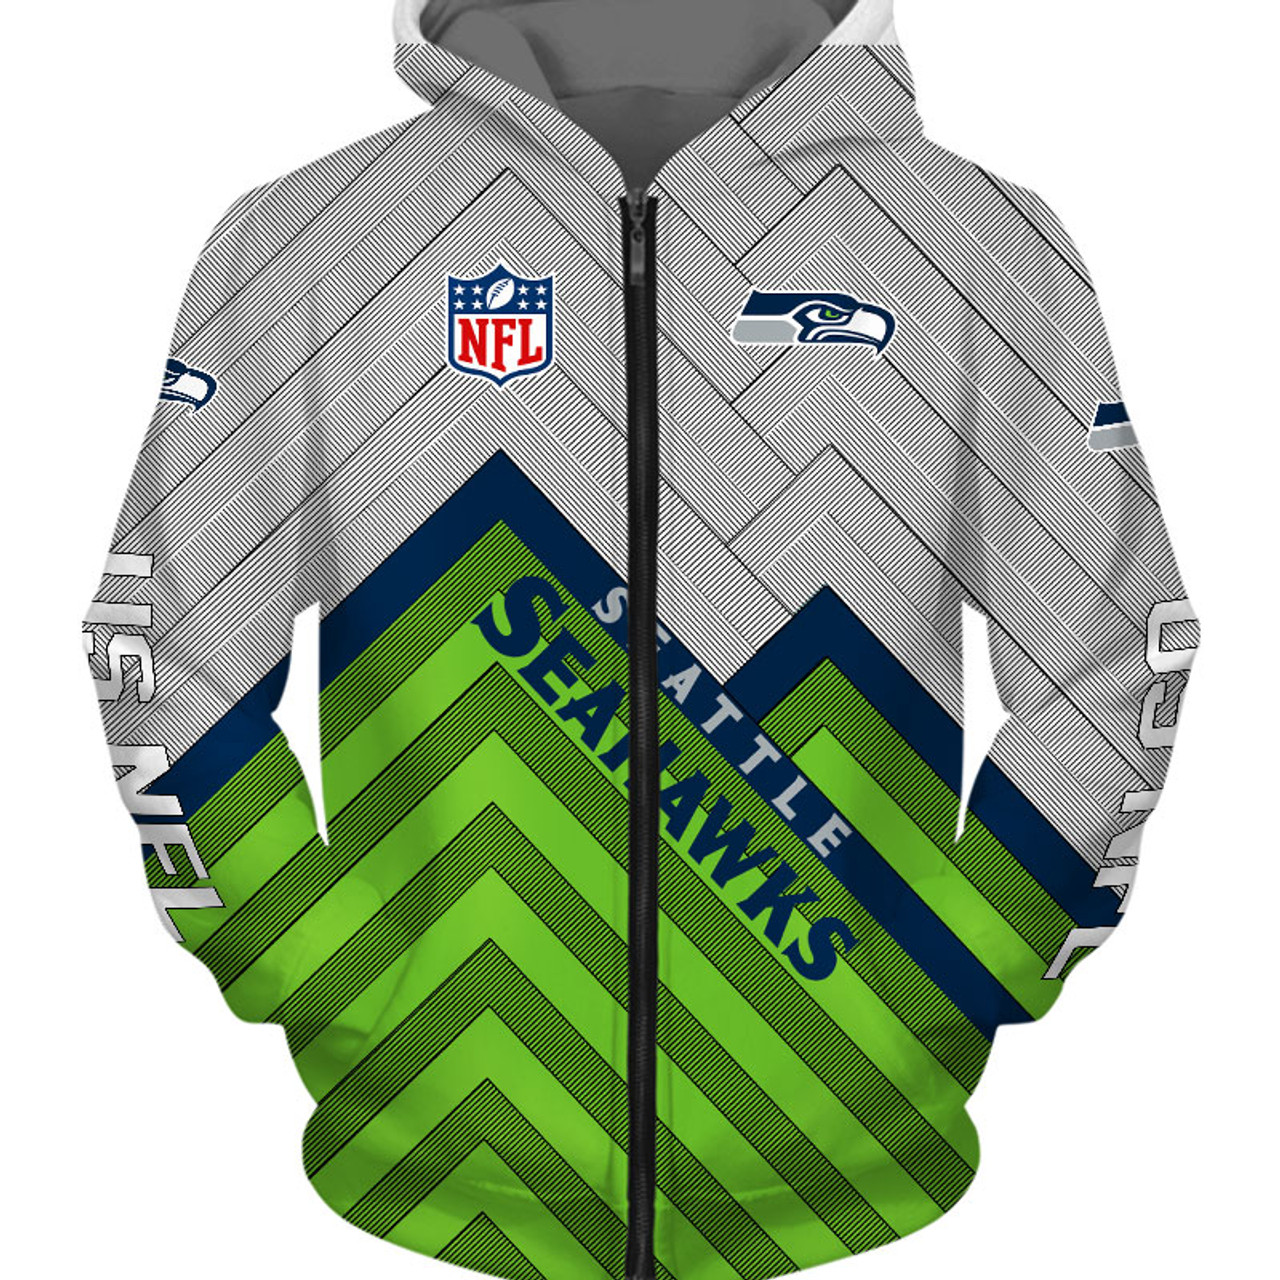 low priced 8d417 ebb4a **(OFFICIAL-N.F.L.SEATTLE-SEAHAWKS-ZIPPERED-HOODIES/3D-CUSTOM-SEAHAWKS-LOGOS  & OFFICIAL-SEAHAWKS-TEAM-COLORS/NICE-3D-DETAILED-GRAPHIC-PRINTED-DOUBLE-S...